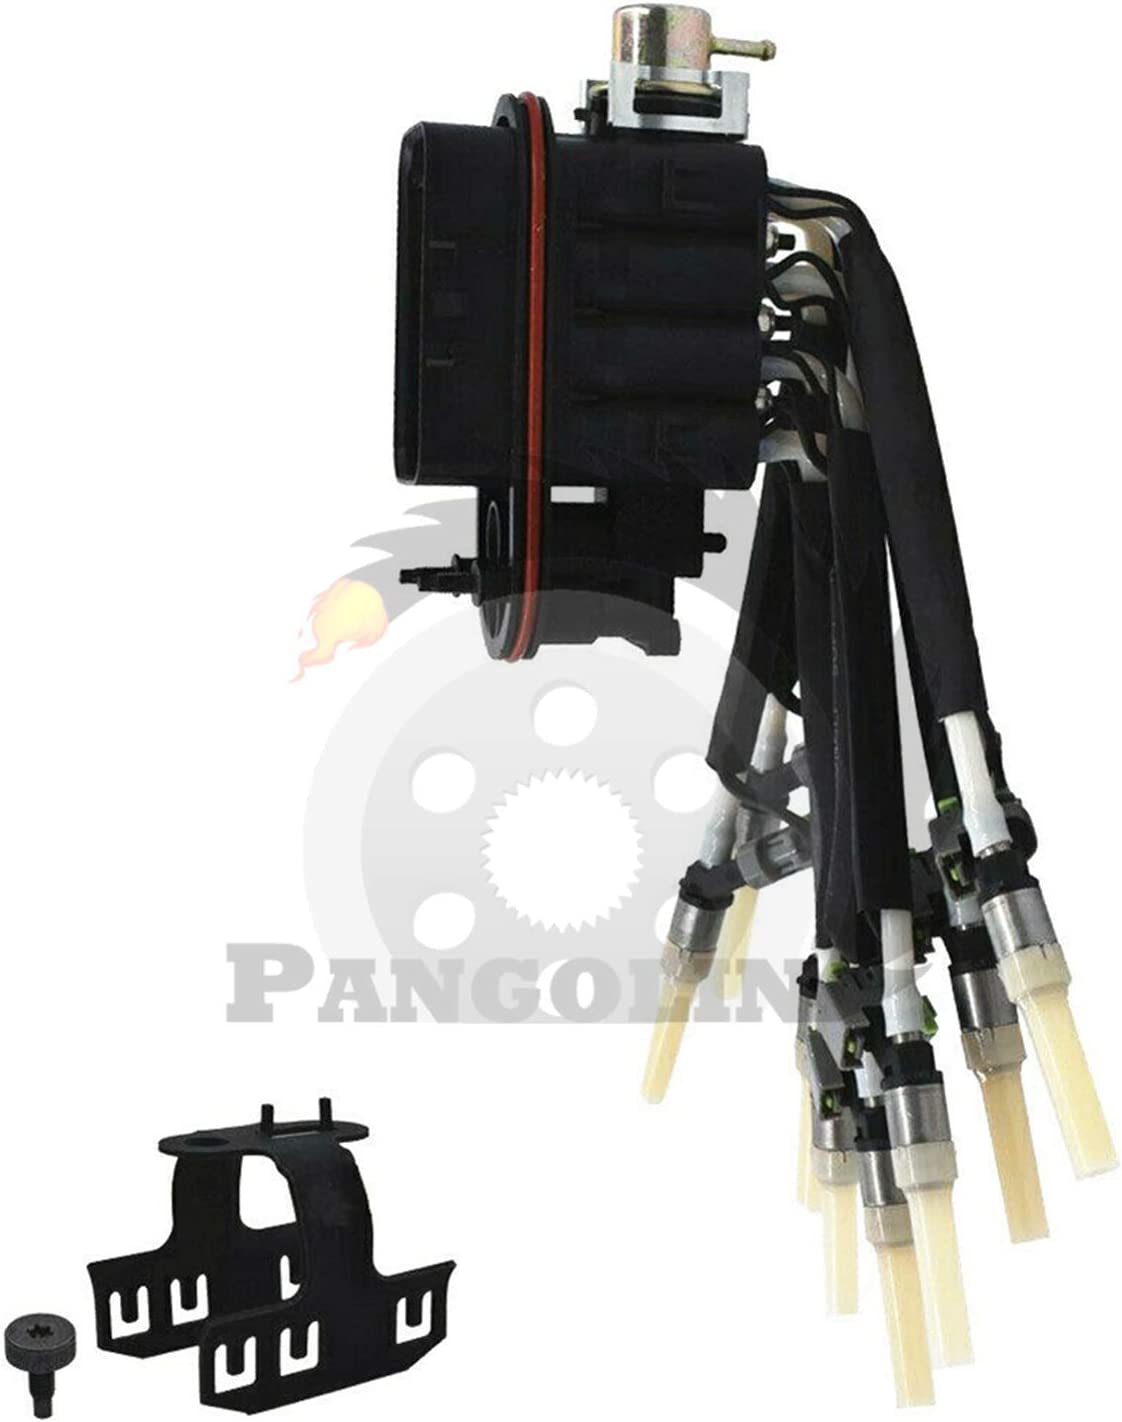 PANGOLIN 217-3029 89060440 Central Fuel Spyder Injector with Bracket FJ504 Fuel Injector Kit for Chevy GMC Oldsmobile Pickup Aftermarket Parts 3 Month Warranty